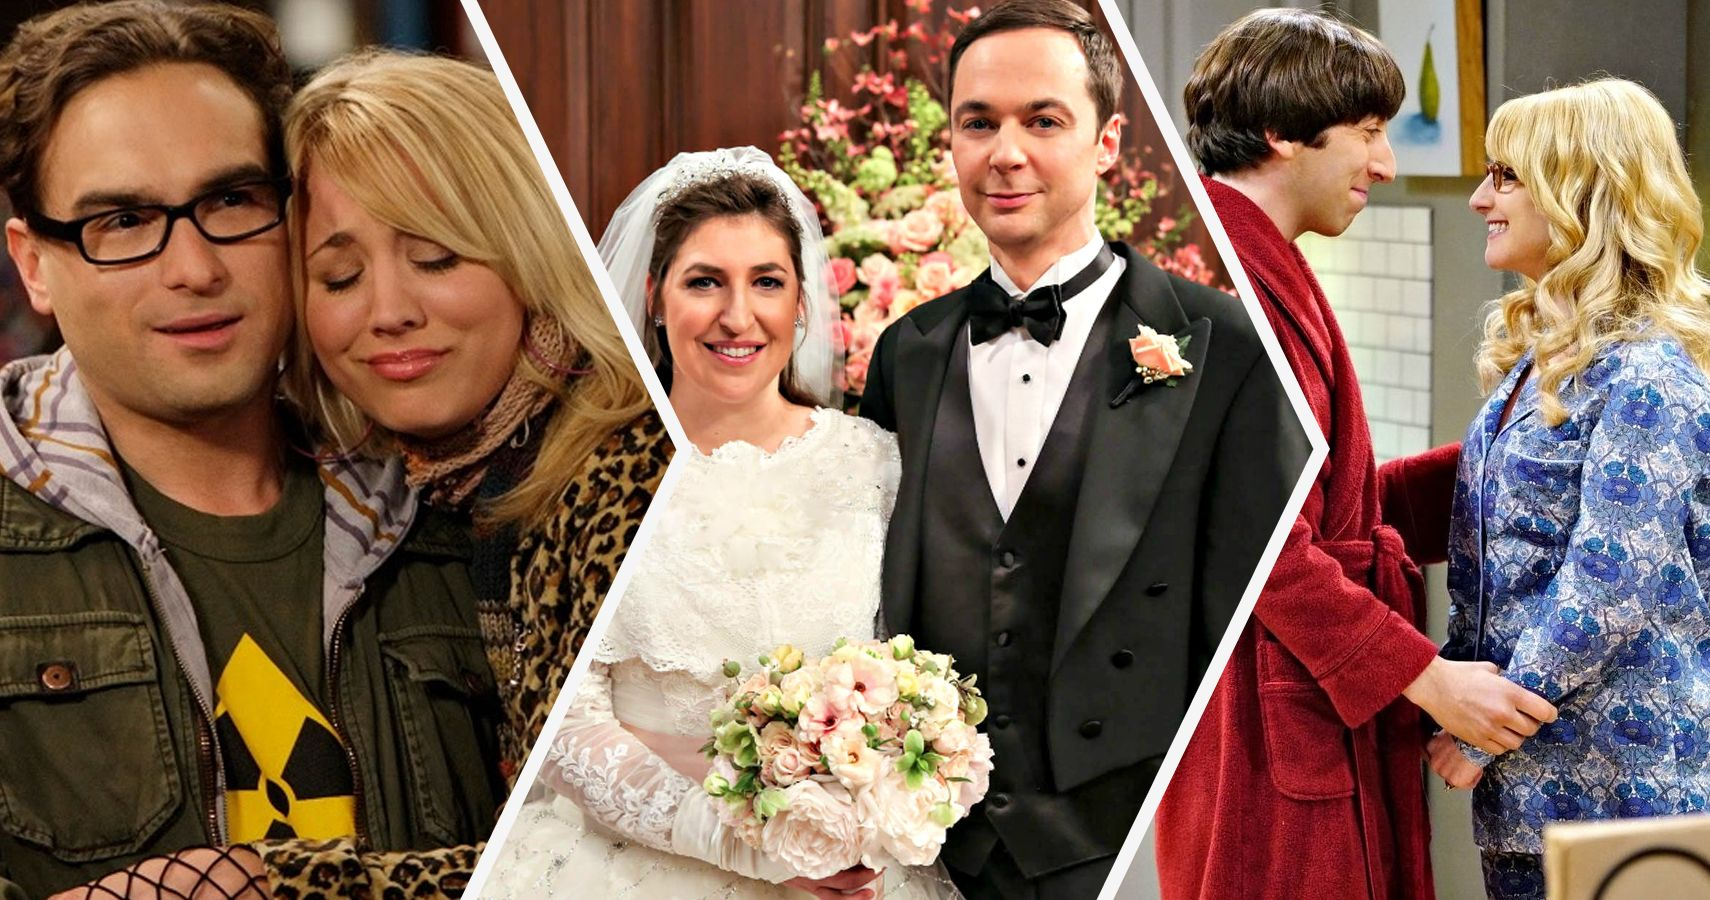 The off-screen relationships of The Big Bang Theory cast